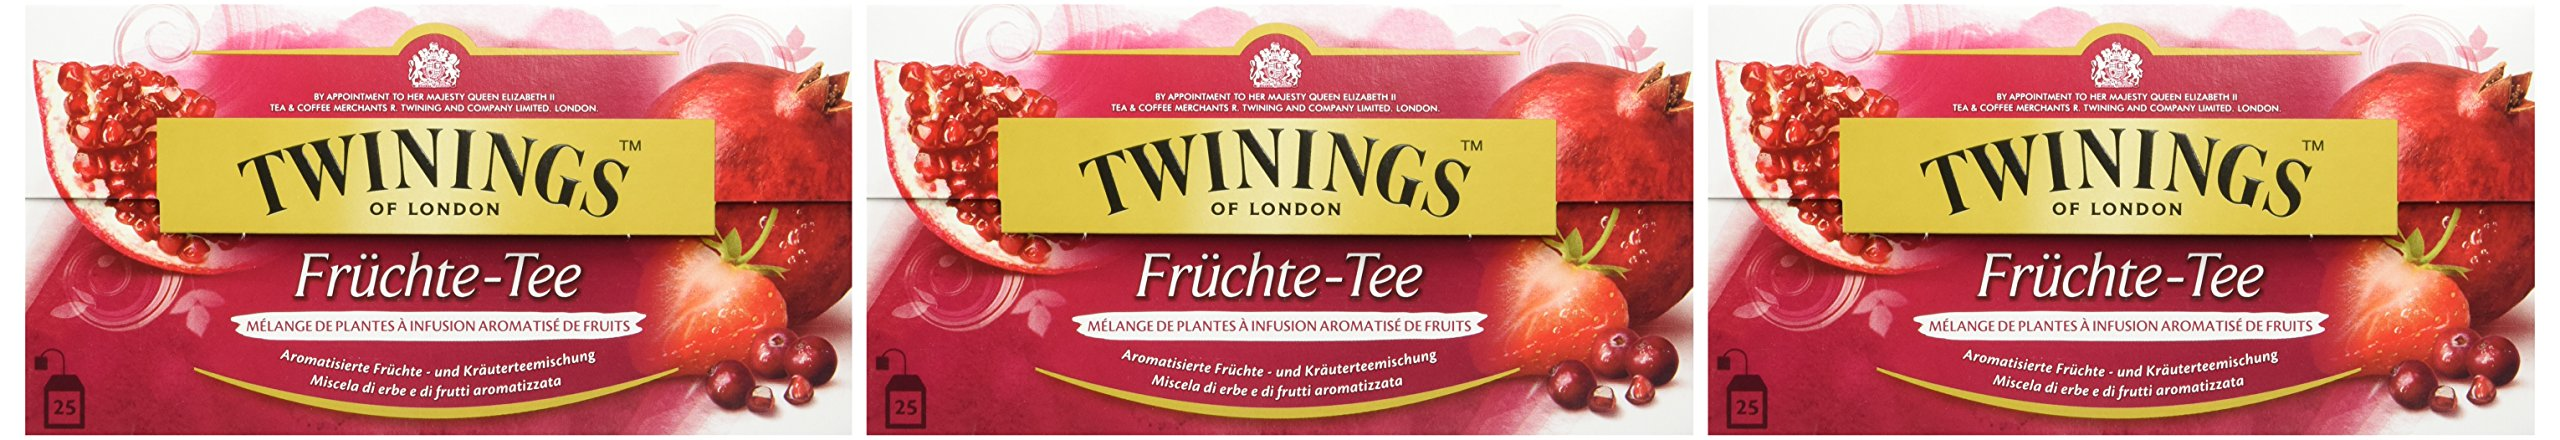 Twinings-Frchte-Tee-25-Beutel-x-2g-50g-3er-Pack-3-x-50-g